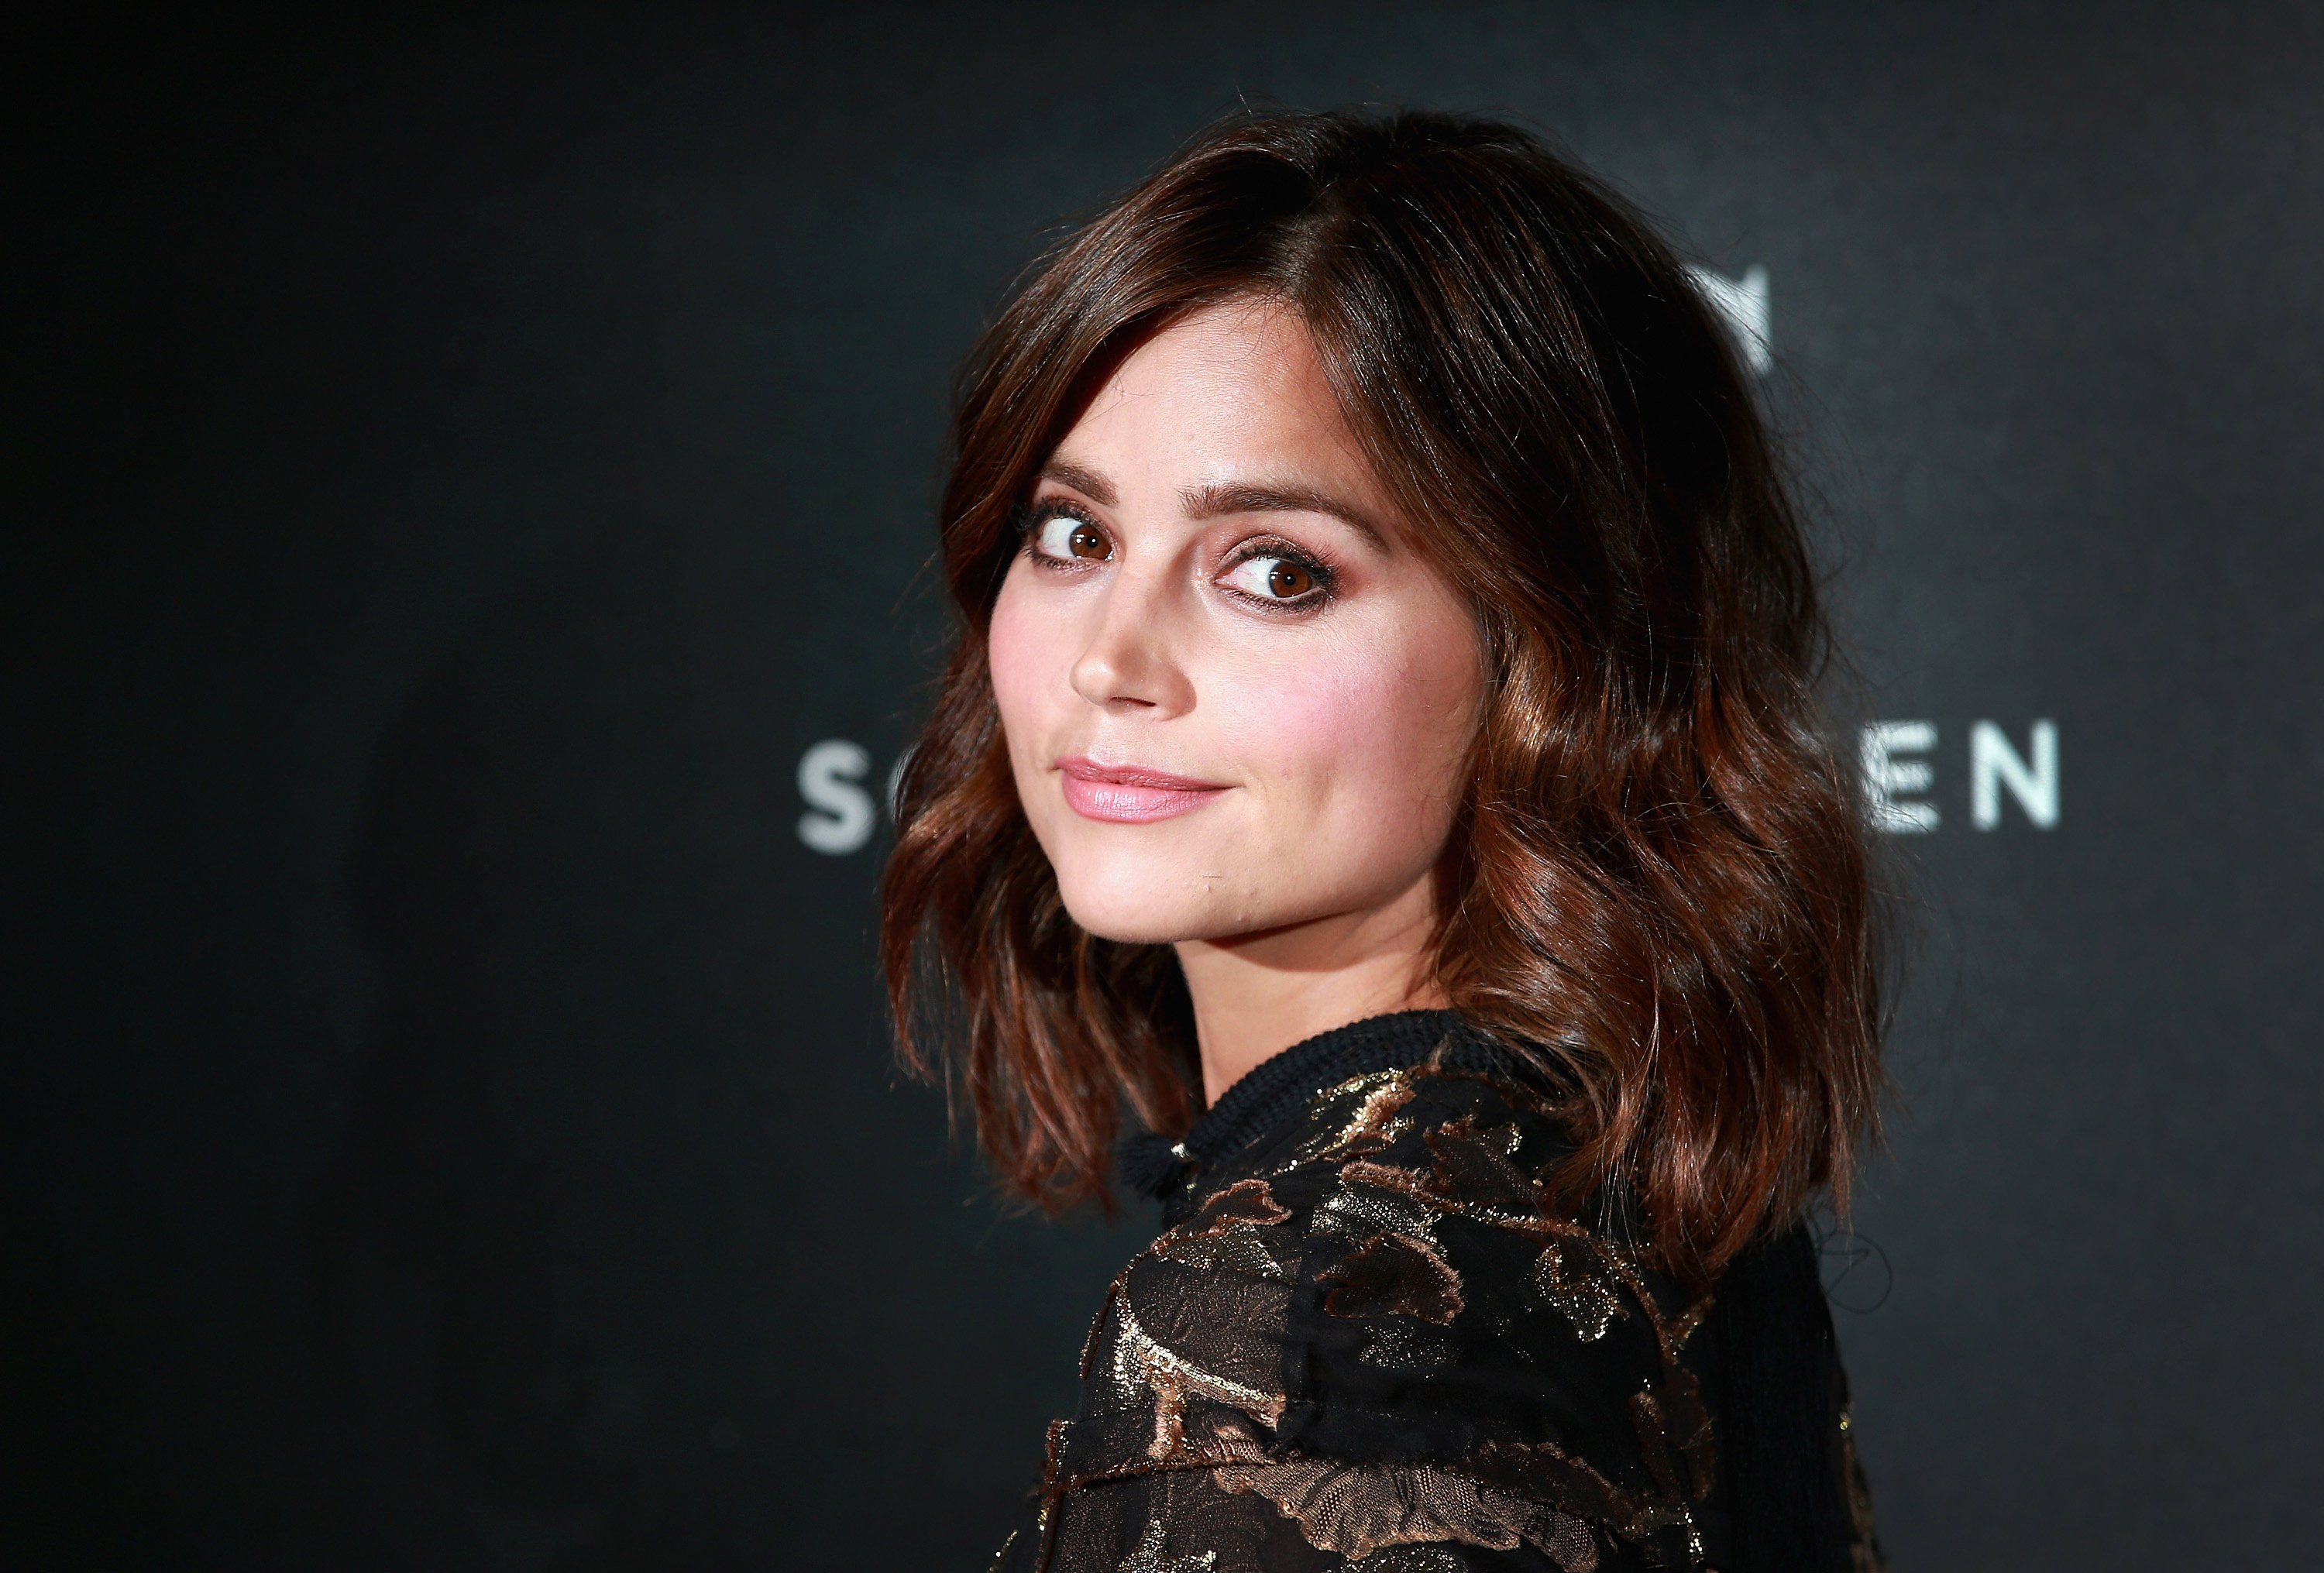 Pictures Of Jenna Coleman